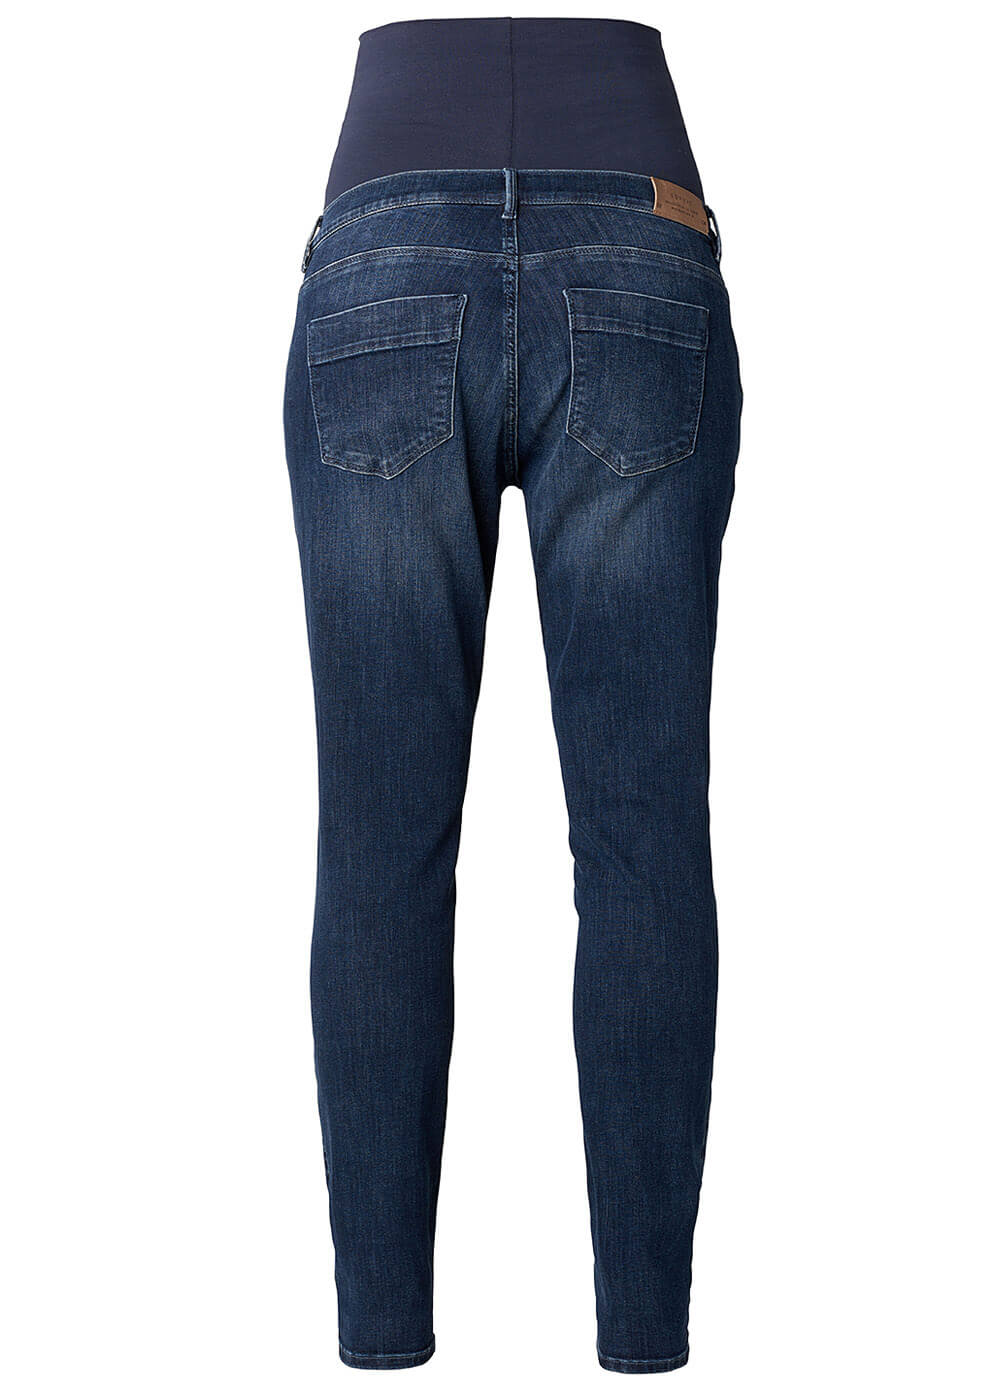 Relaxed Denim Maternity Boyfriend Jeans by Esprit